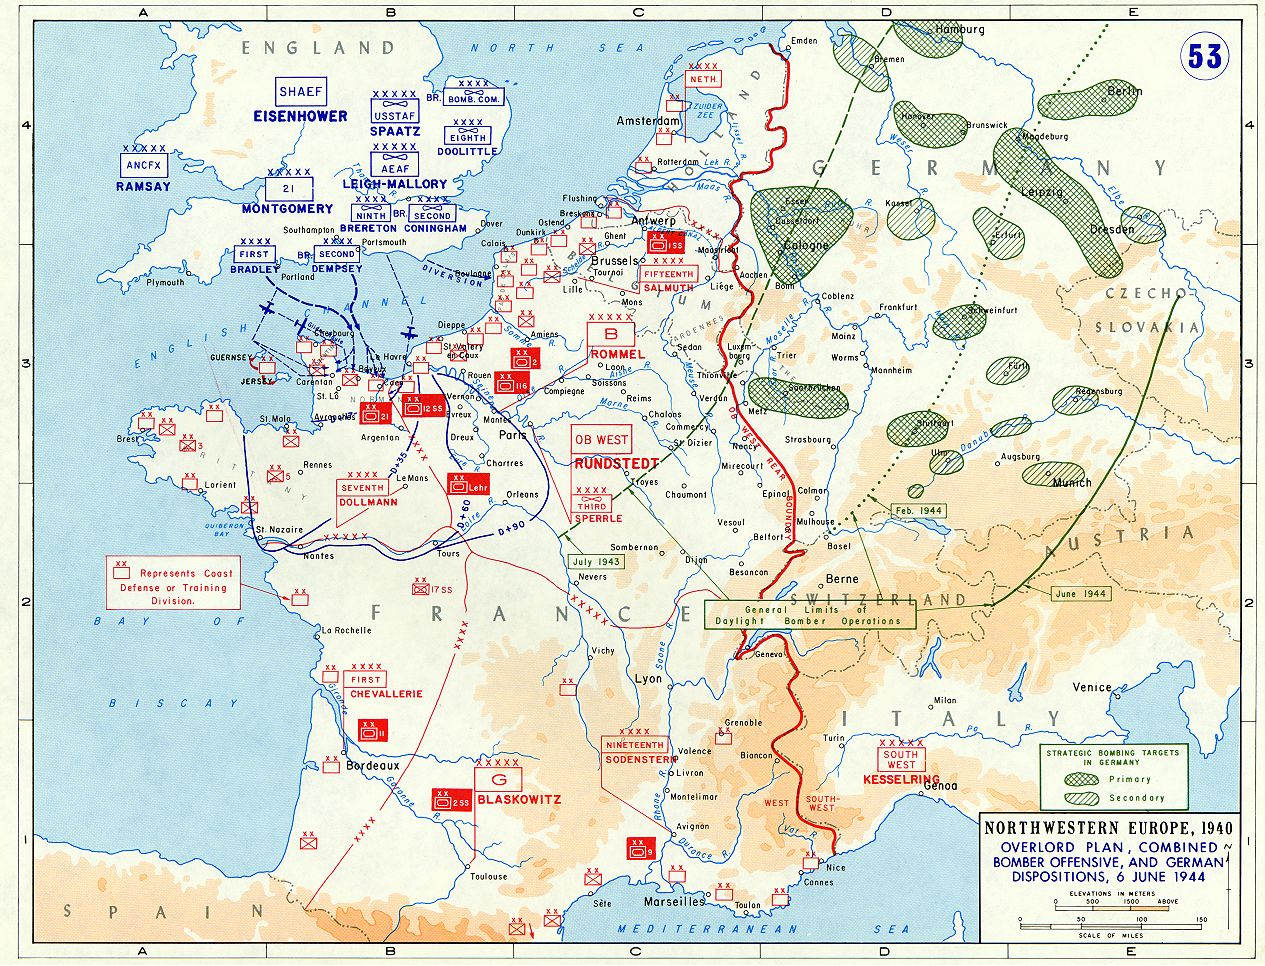 Overlord Plan bined Bomber fensive And German Dispositions 6